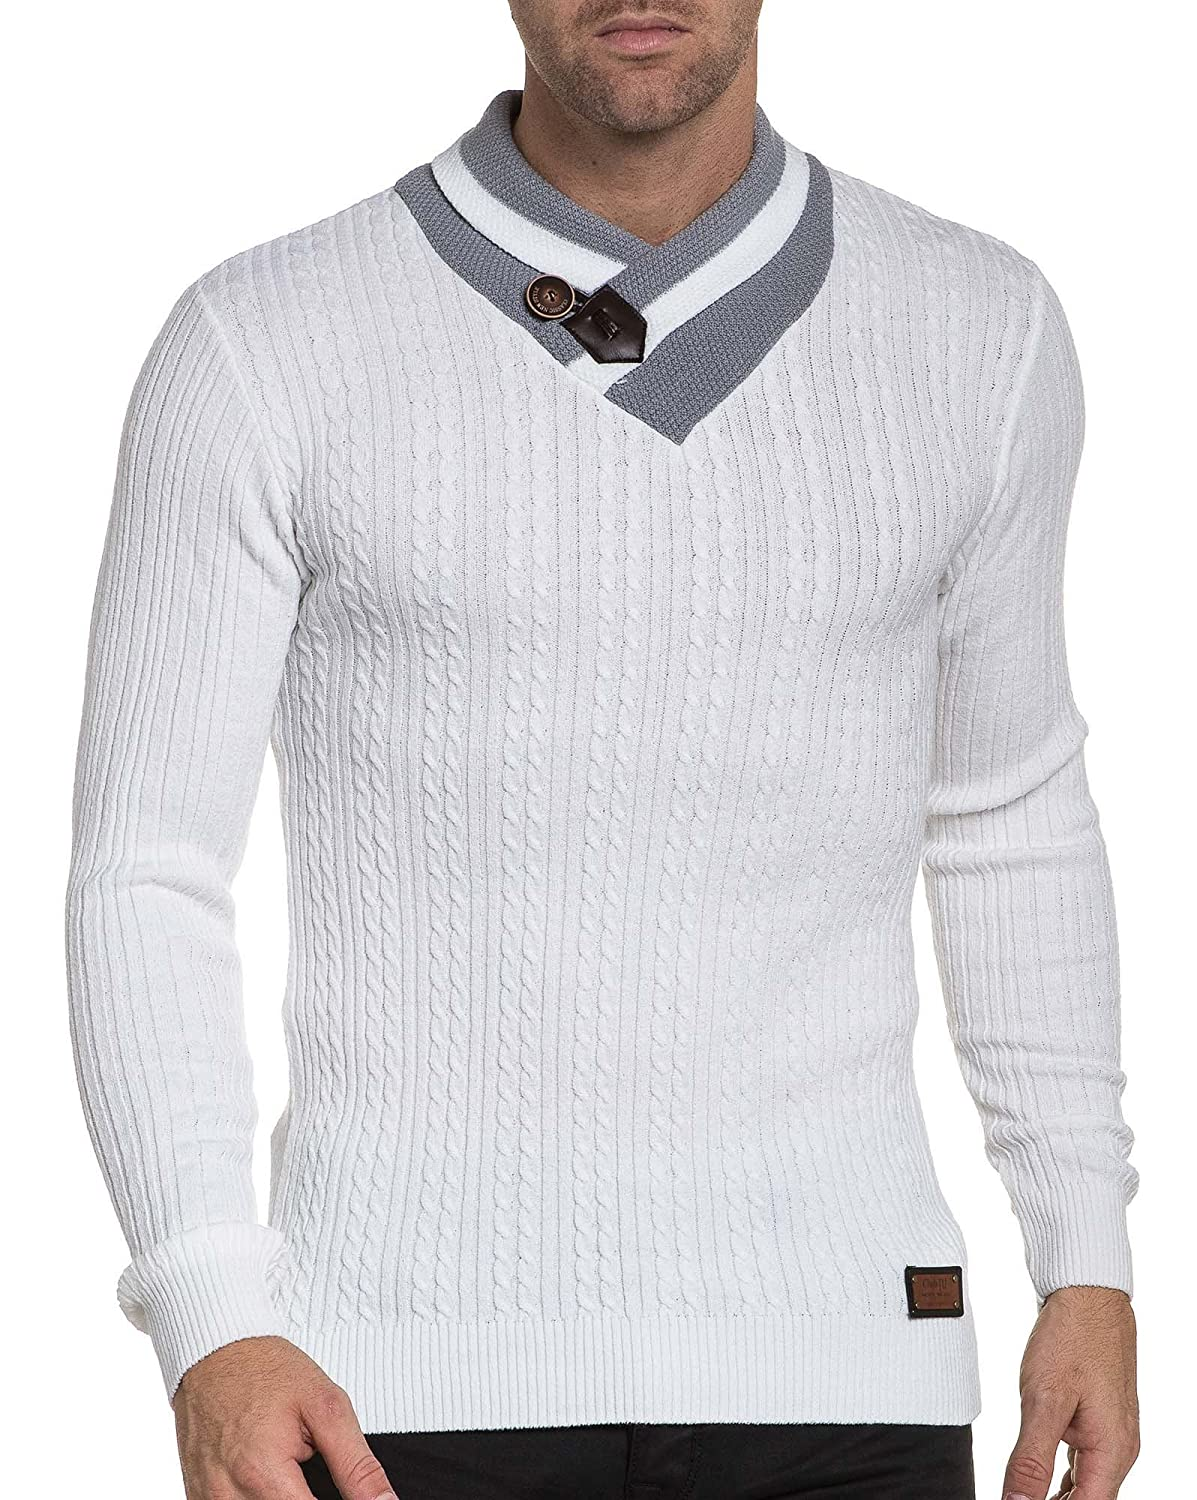 BLZ jeans - Pullover ribbed shawl collar white man amount